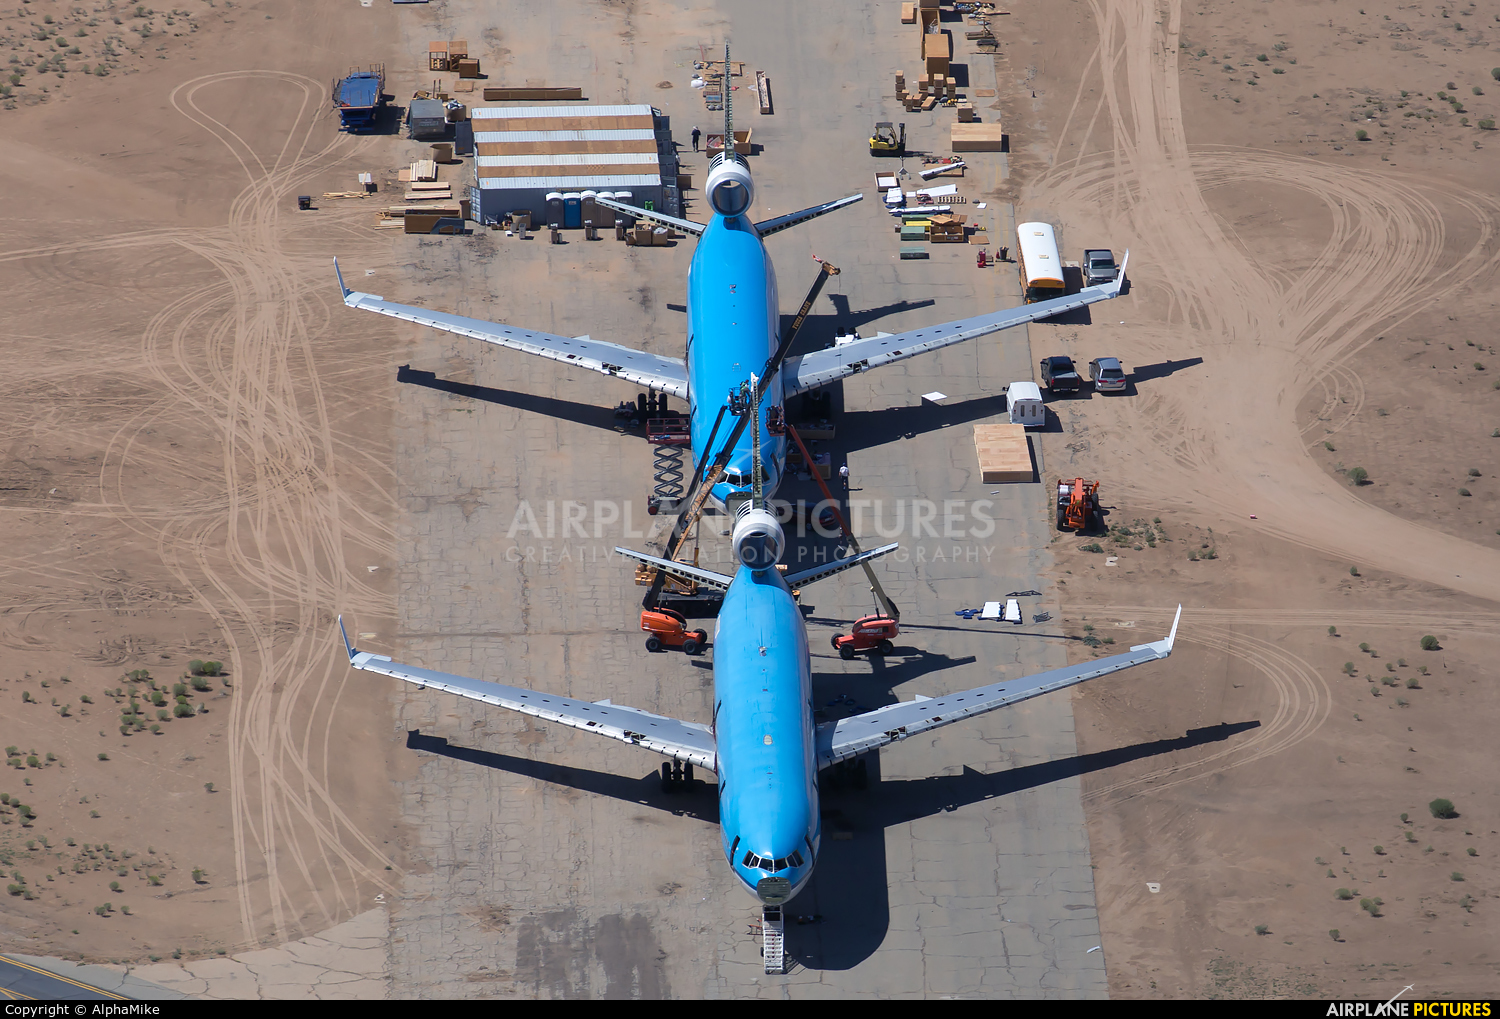 KLM - aircraft at Victorville - Southern California Logistics